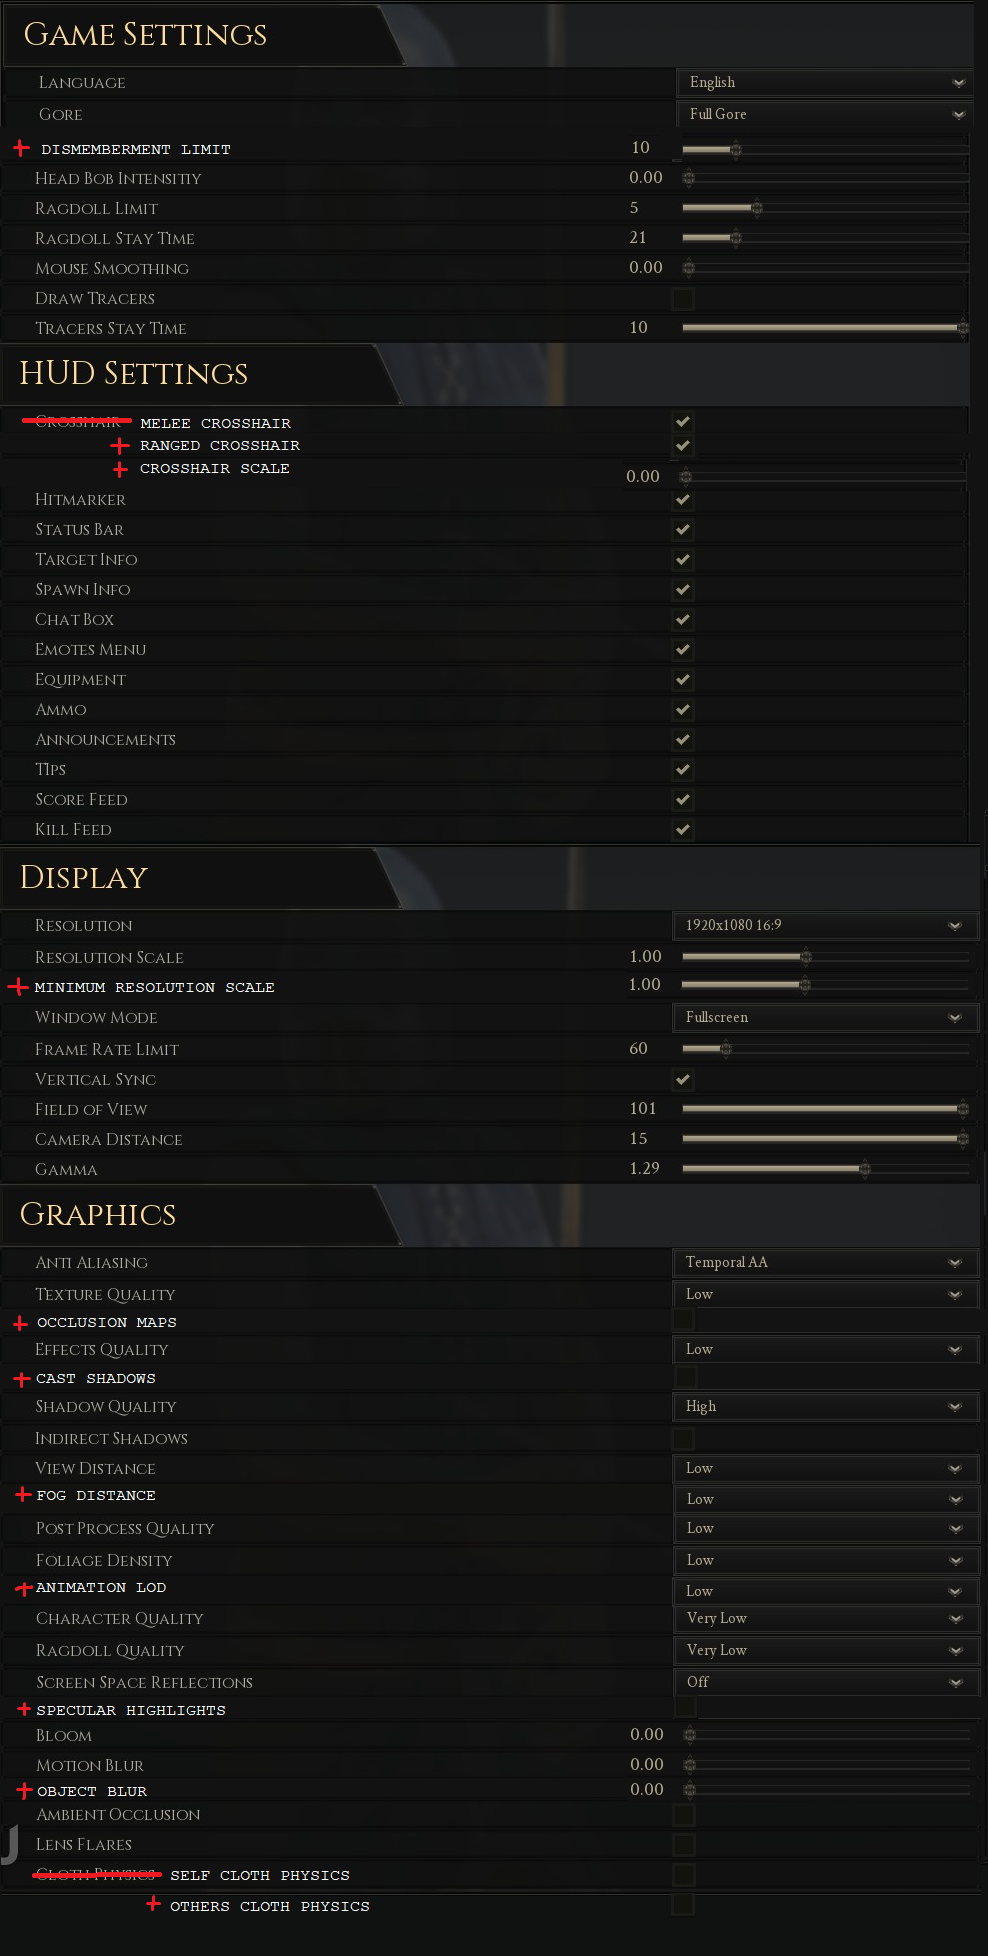 some graphic and HUD options that i would like to see